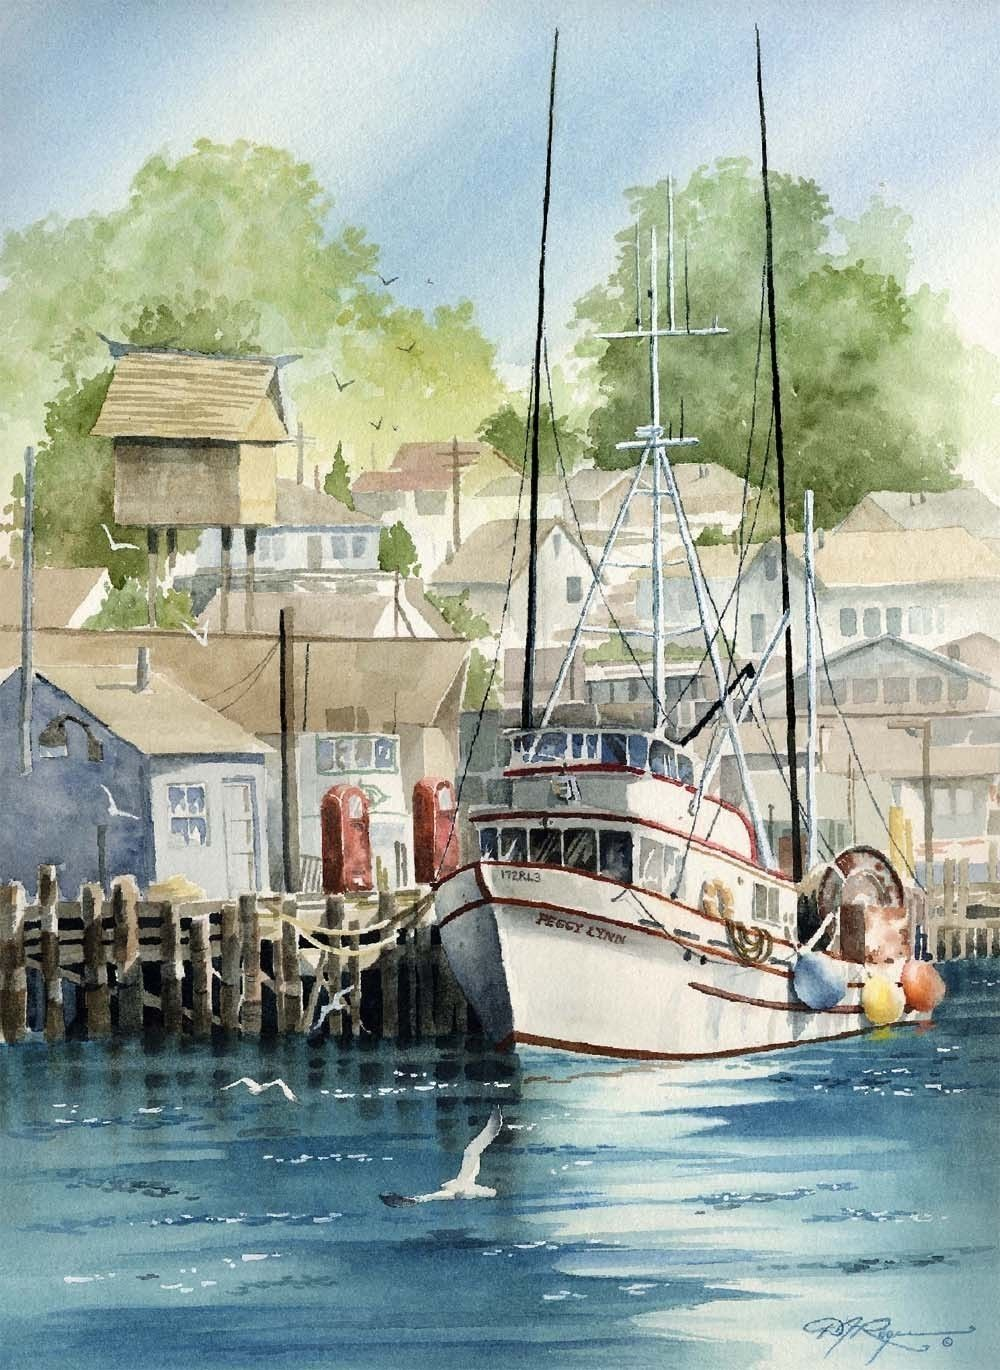 Morro bay fishing boat watercolor painting art by for Fishing boat painting